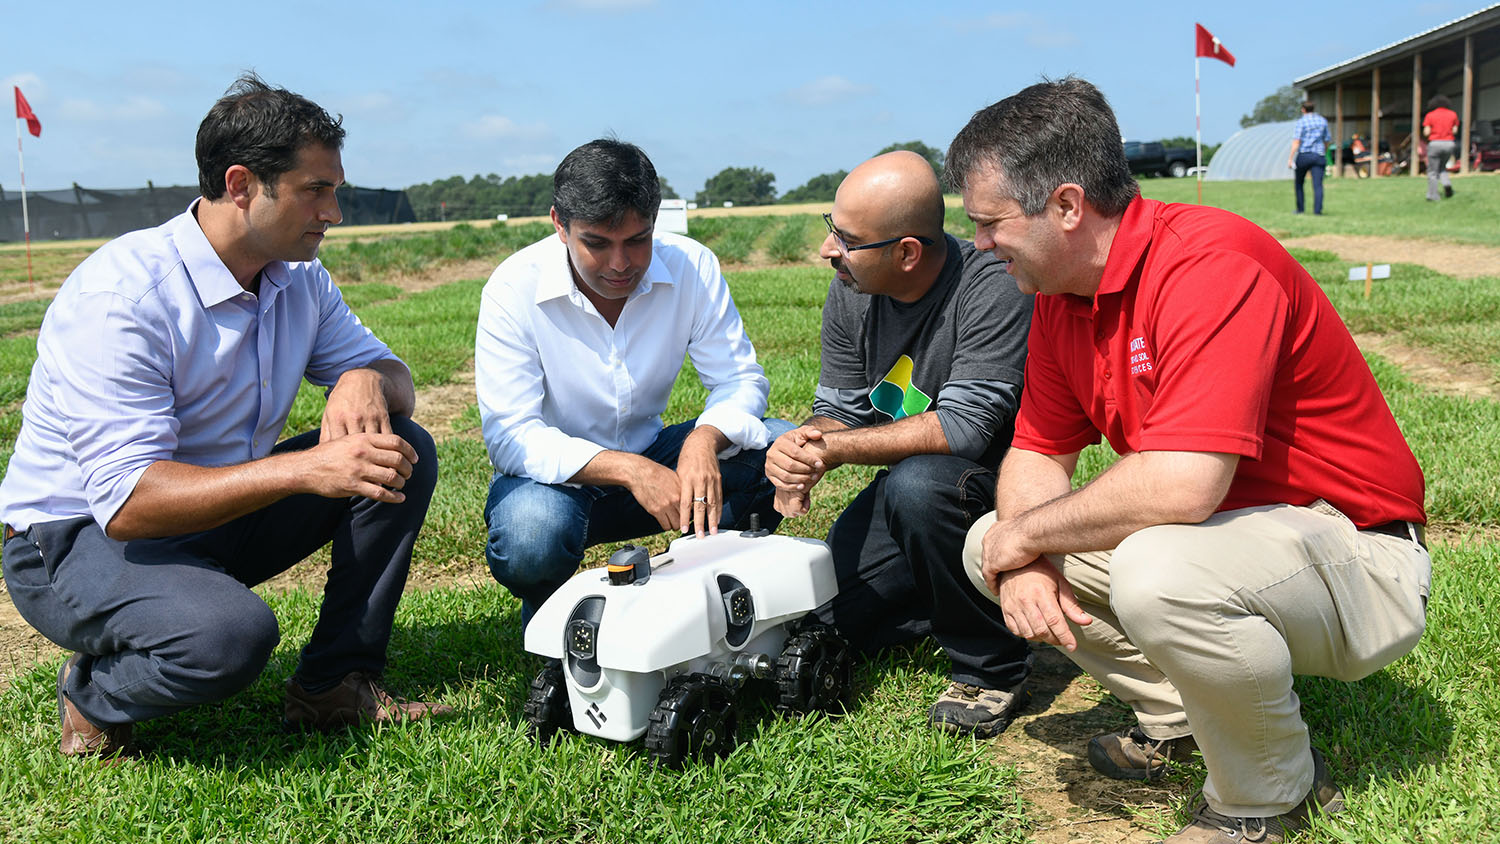 Chris Reberg-Horton and Steven Mirsky, co-leaders of a $10M sustainability grant examine an autonomous ag data collection robot.